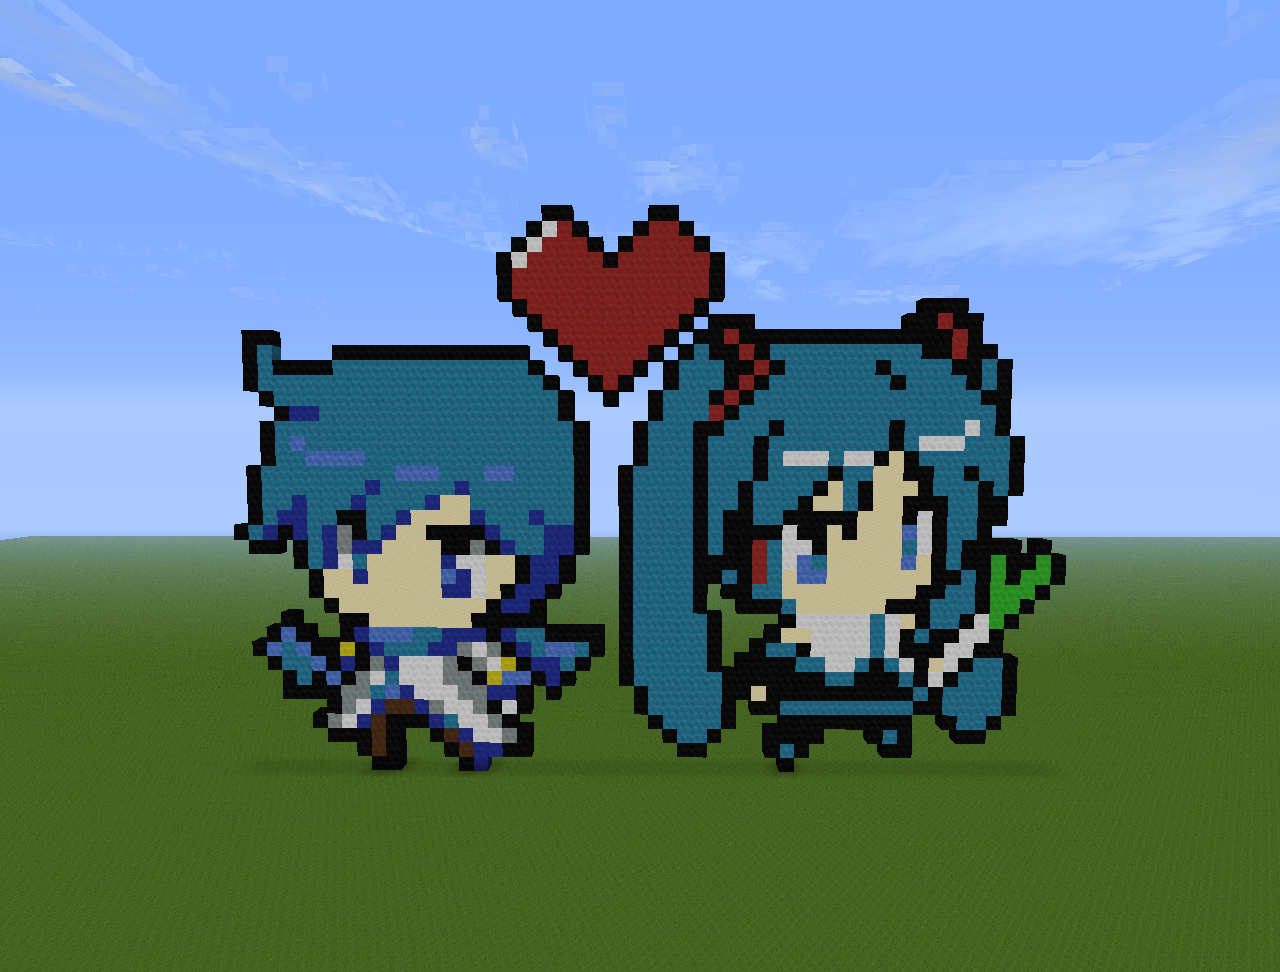 Kaito and Miku Pixel Art on Minecraft by Darkbrussel on DeviantArt